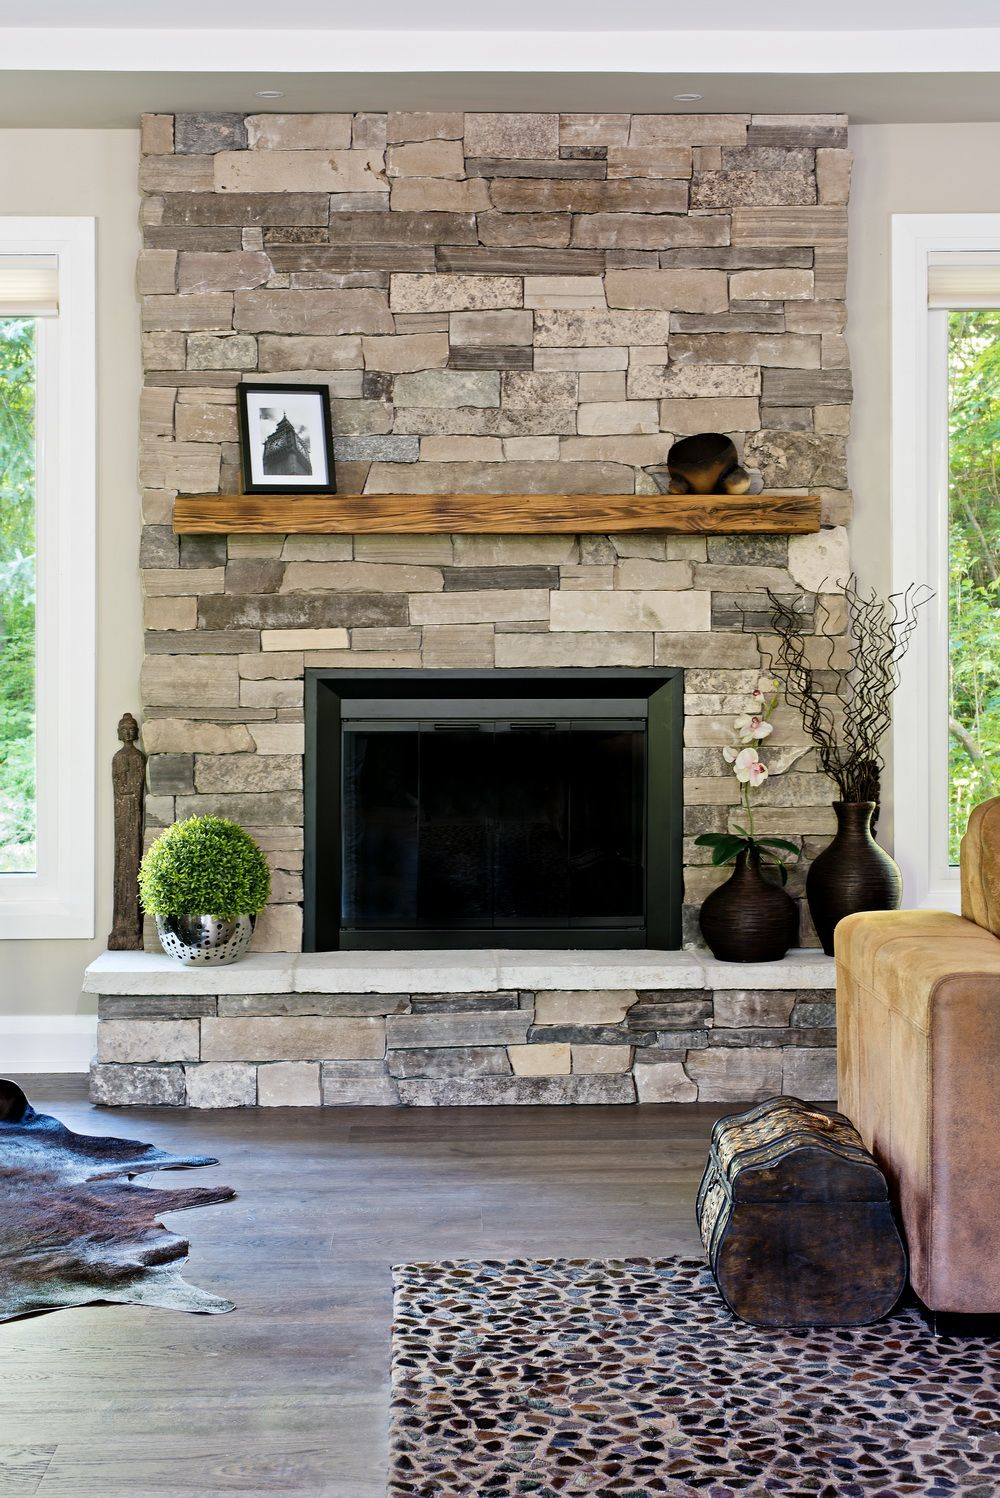 Best 25 Natural Stone Veneer Ideas On Pinterest Natural Stone Cladding Natural Gas Fireplace